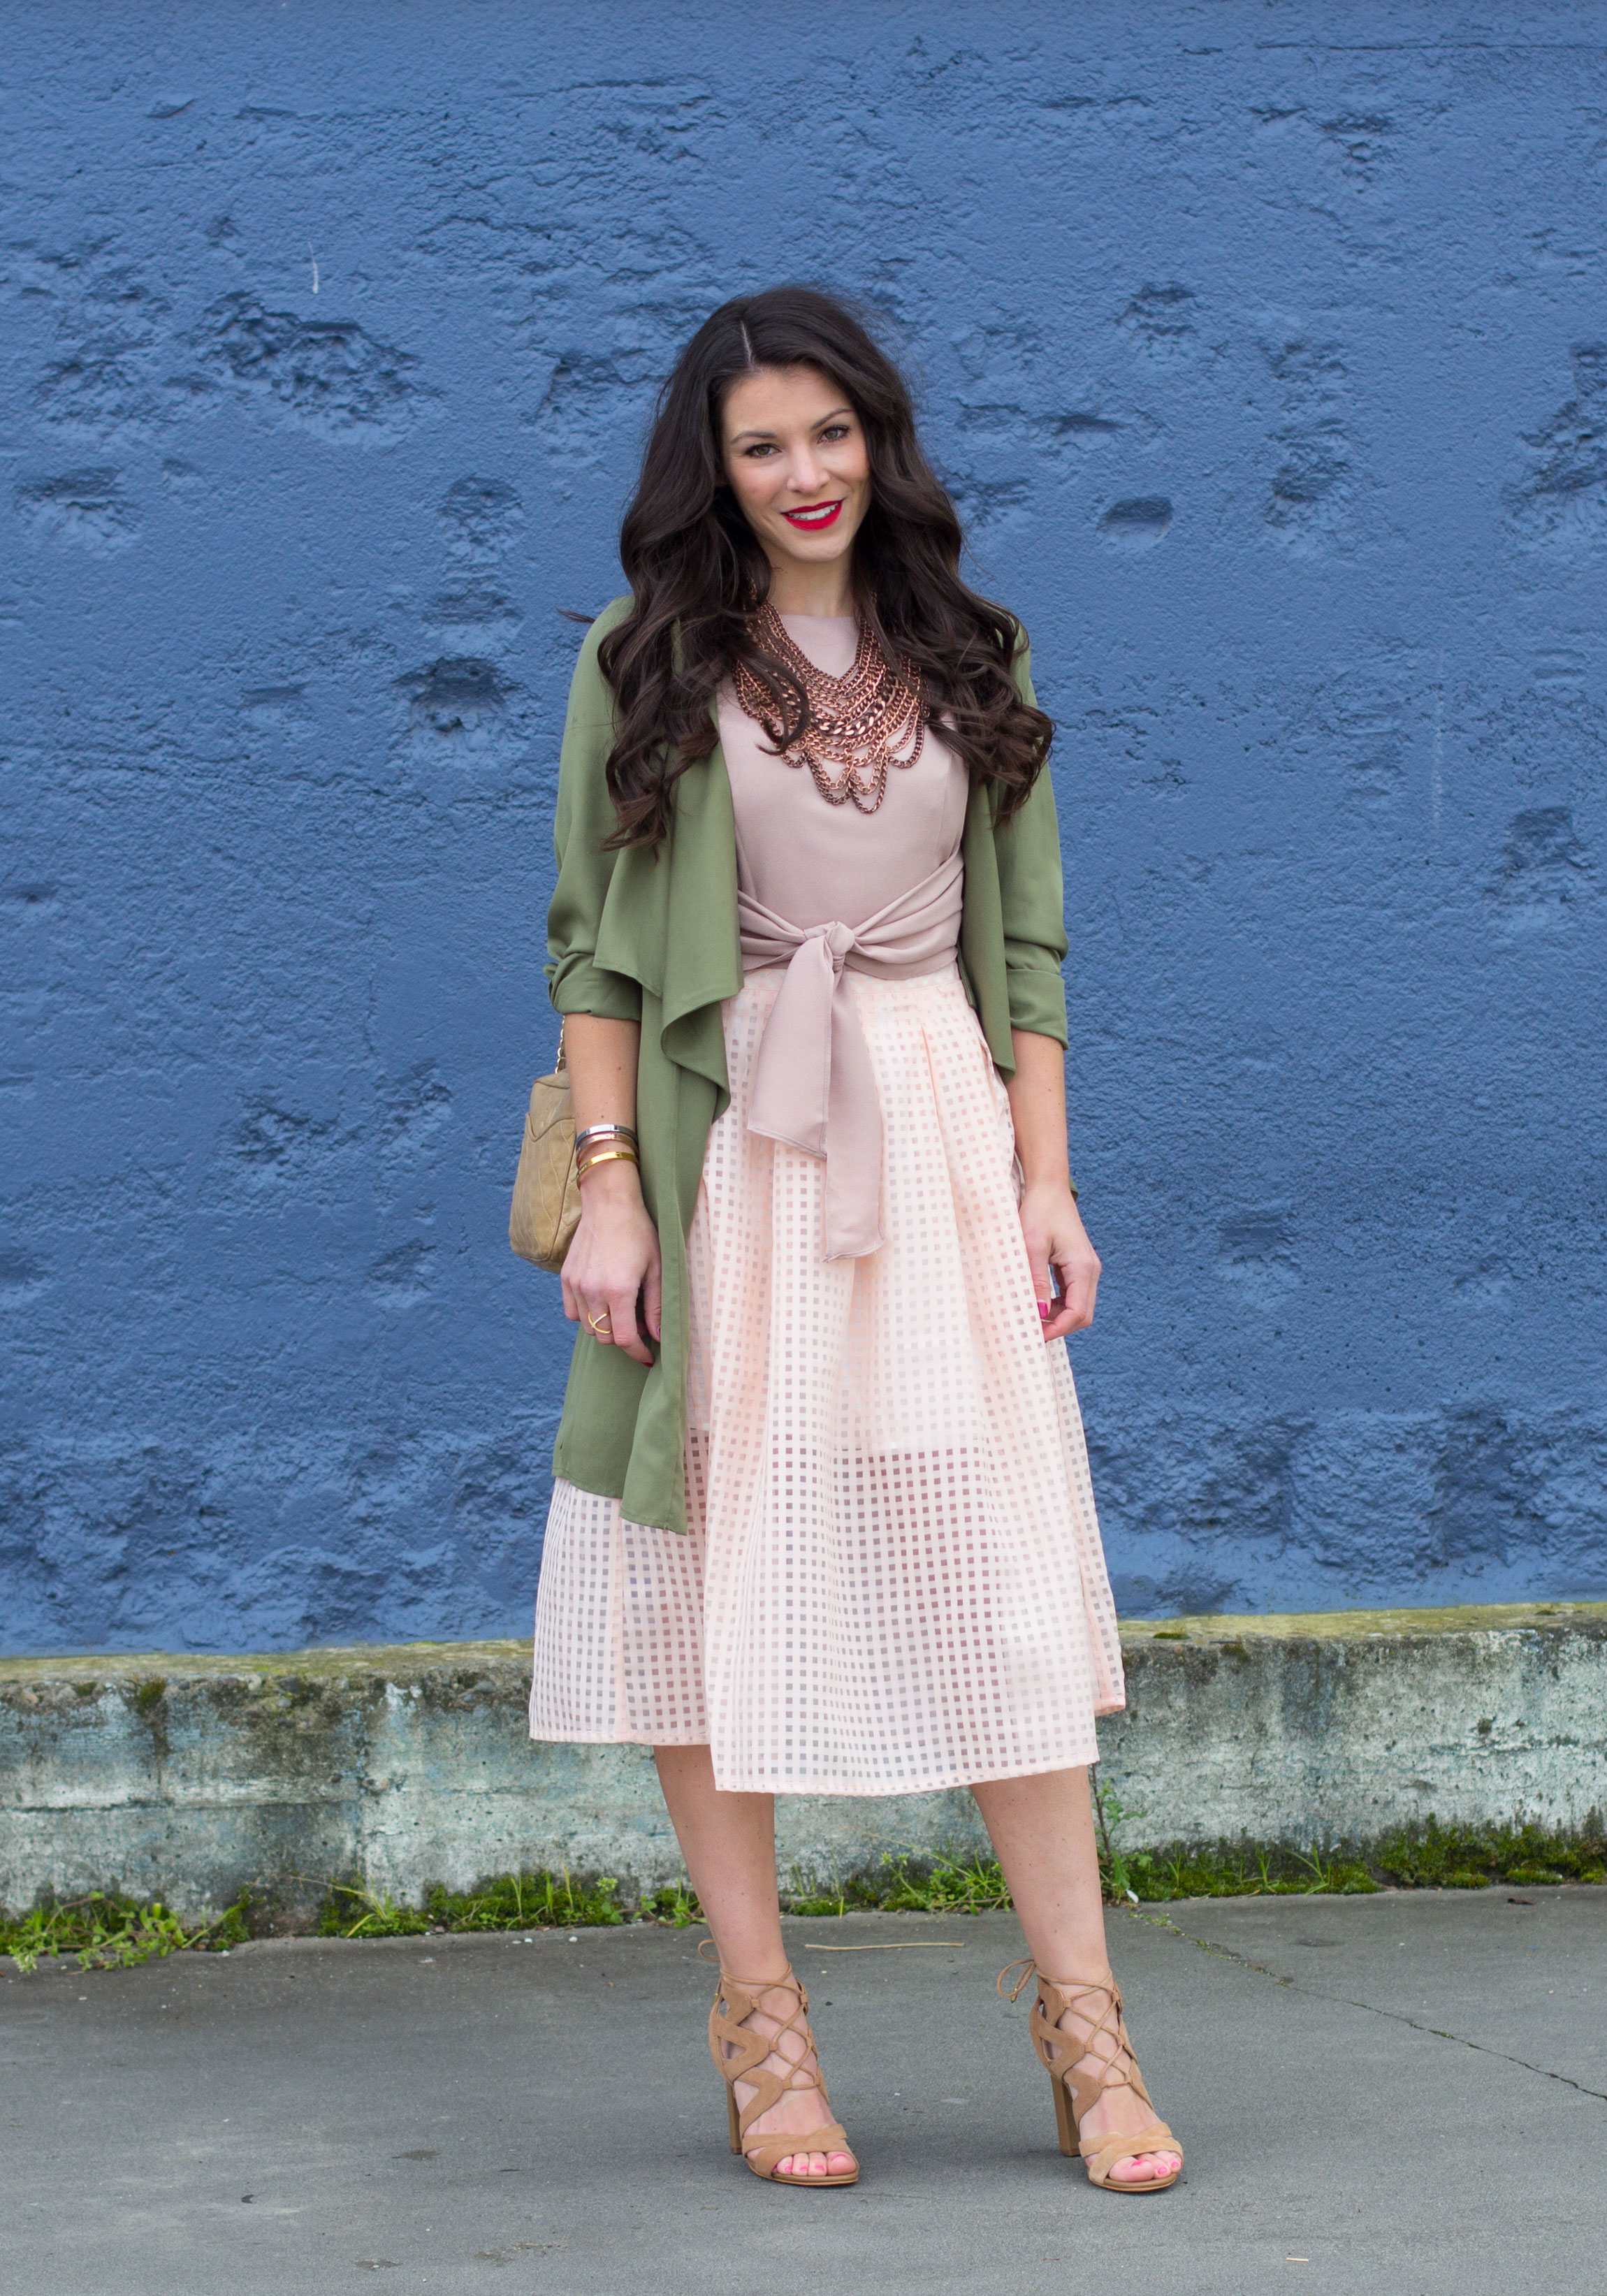 8e3c5018b Midi Skirt Outfit, Crop Top With Midi Skirt, Baublebar Courtney Bib  Necklace, Vintage